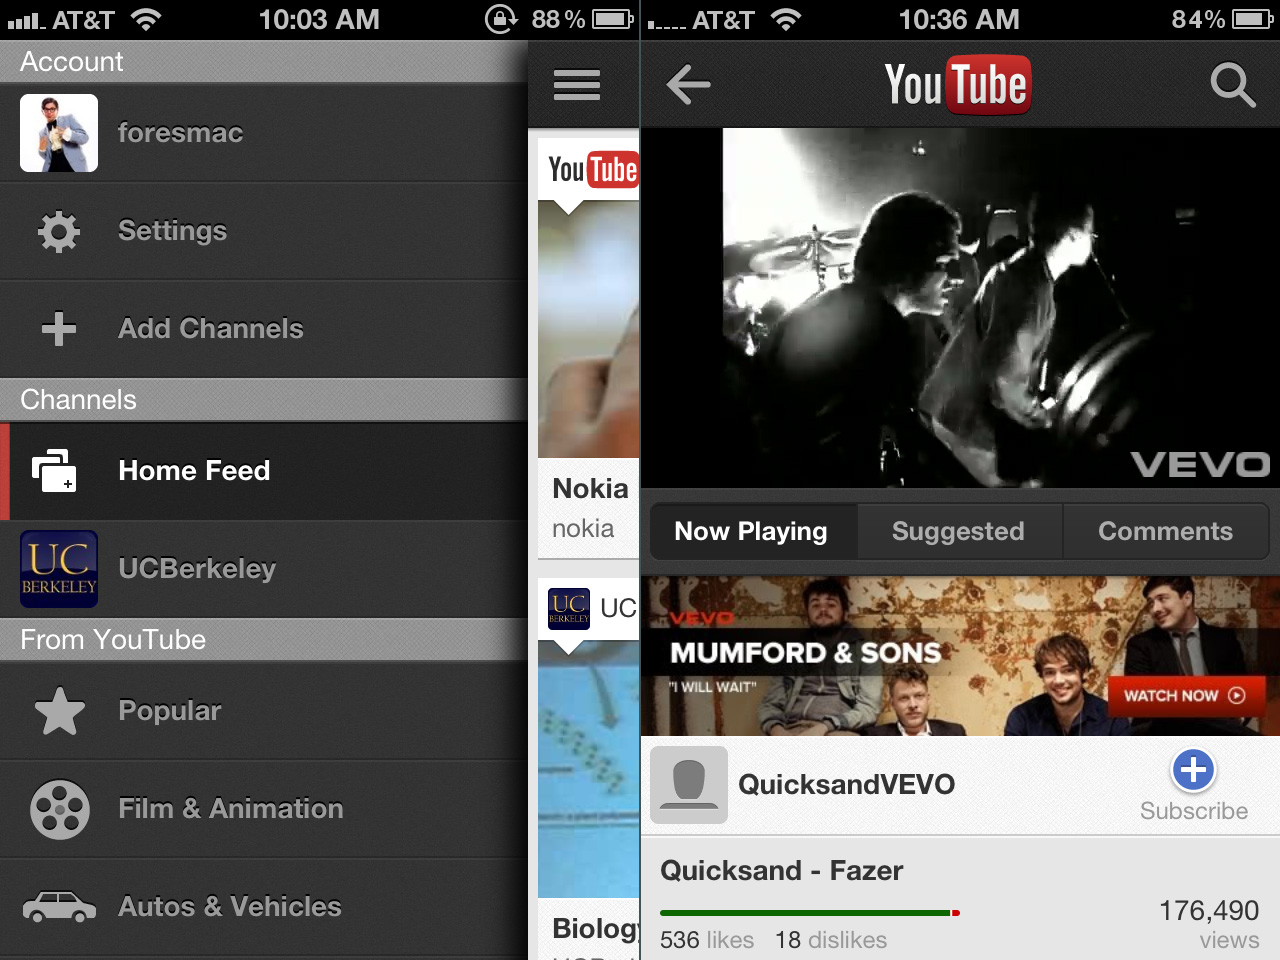 Hands-on: Google's new YouTube app improves on Apple's